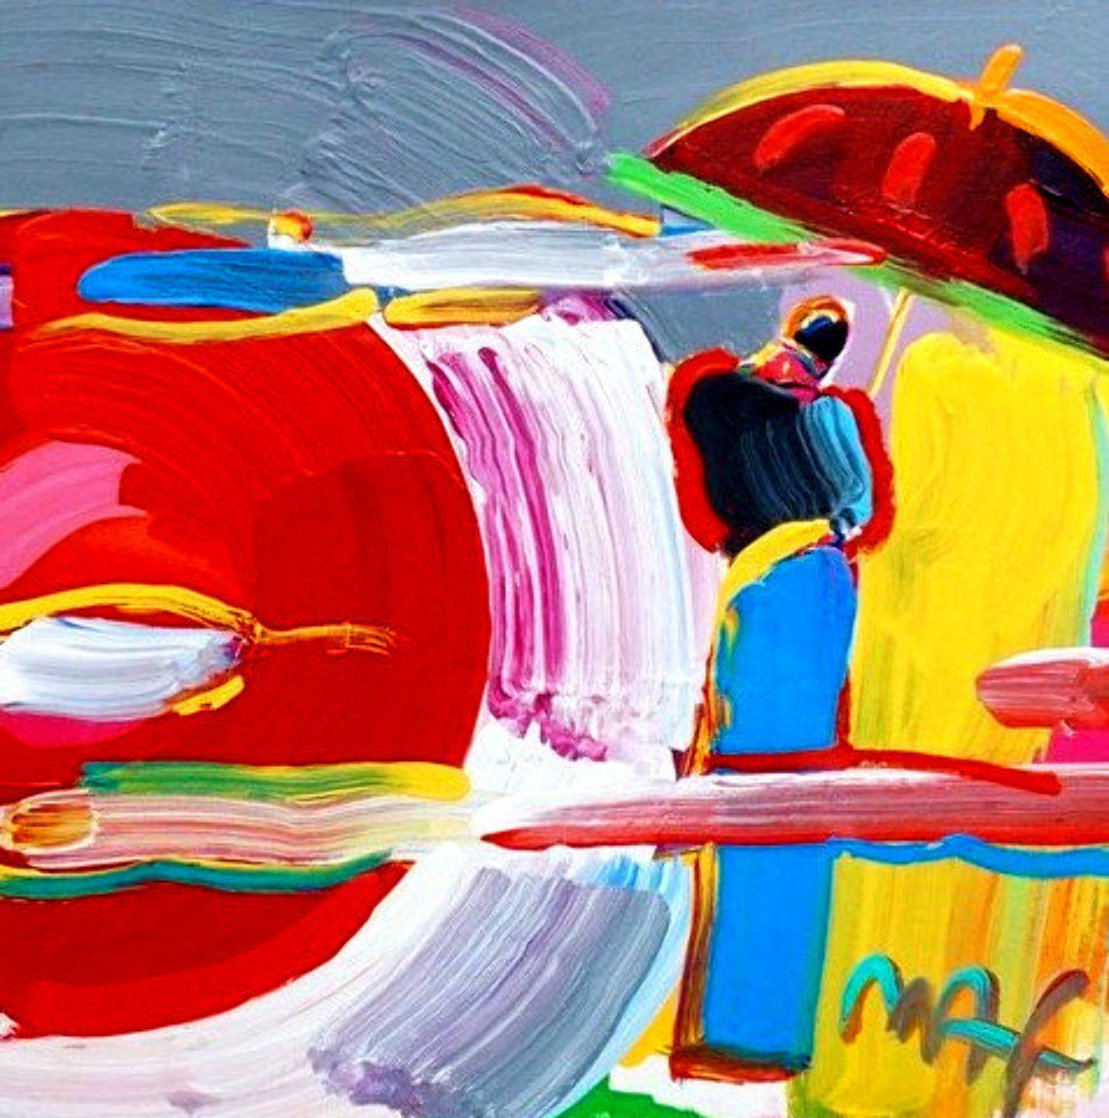 New Moon #53 1997 20x20 Works on Paper (not prints) by Peter Max